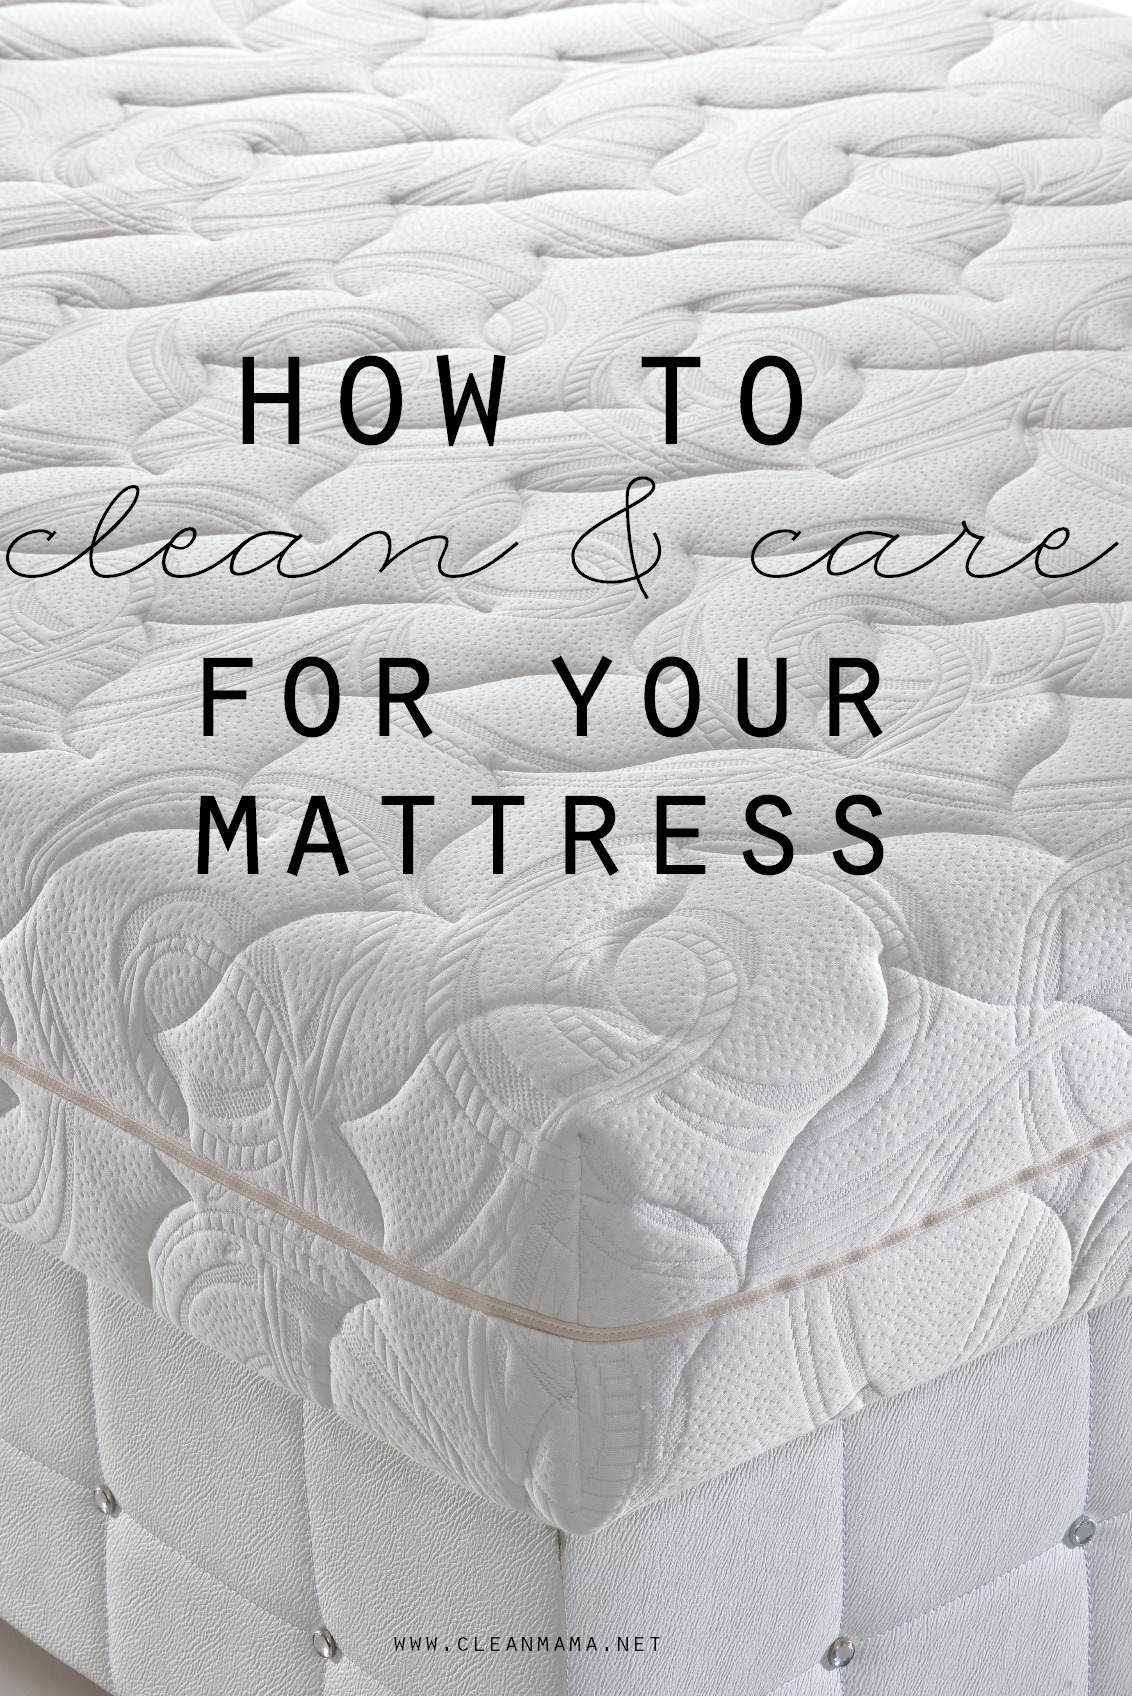 How to Clean & Care For Your Mattress via Clean Mama